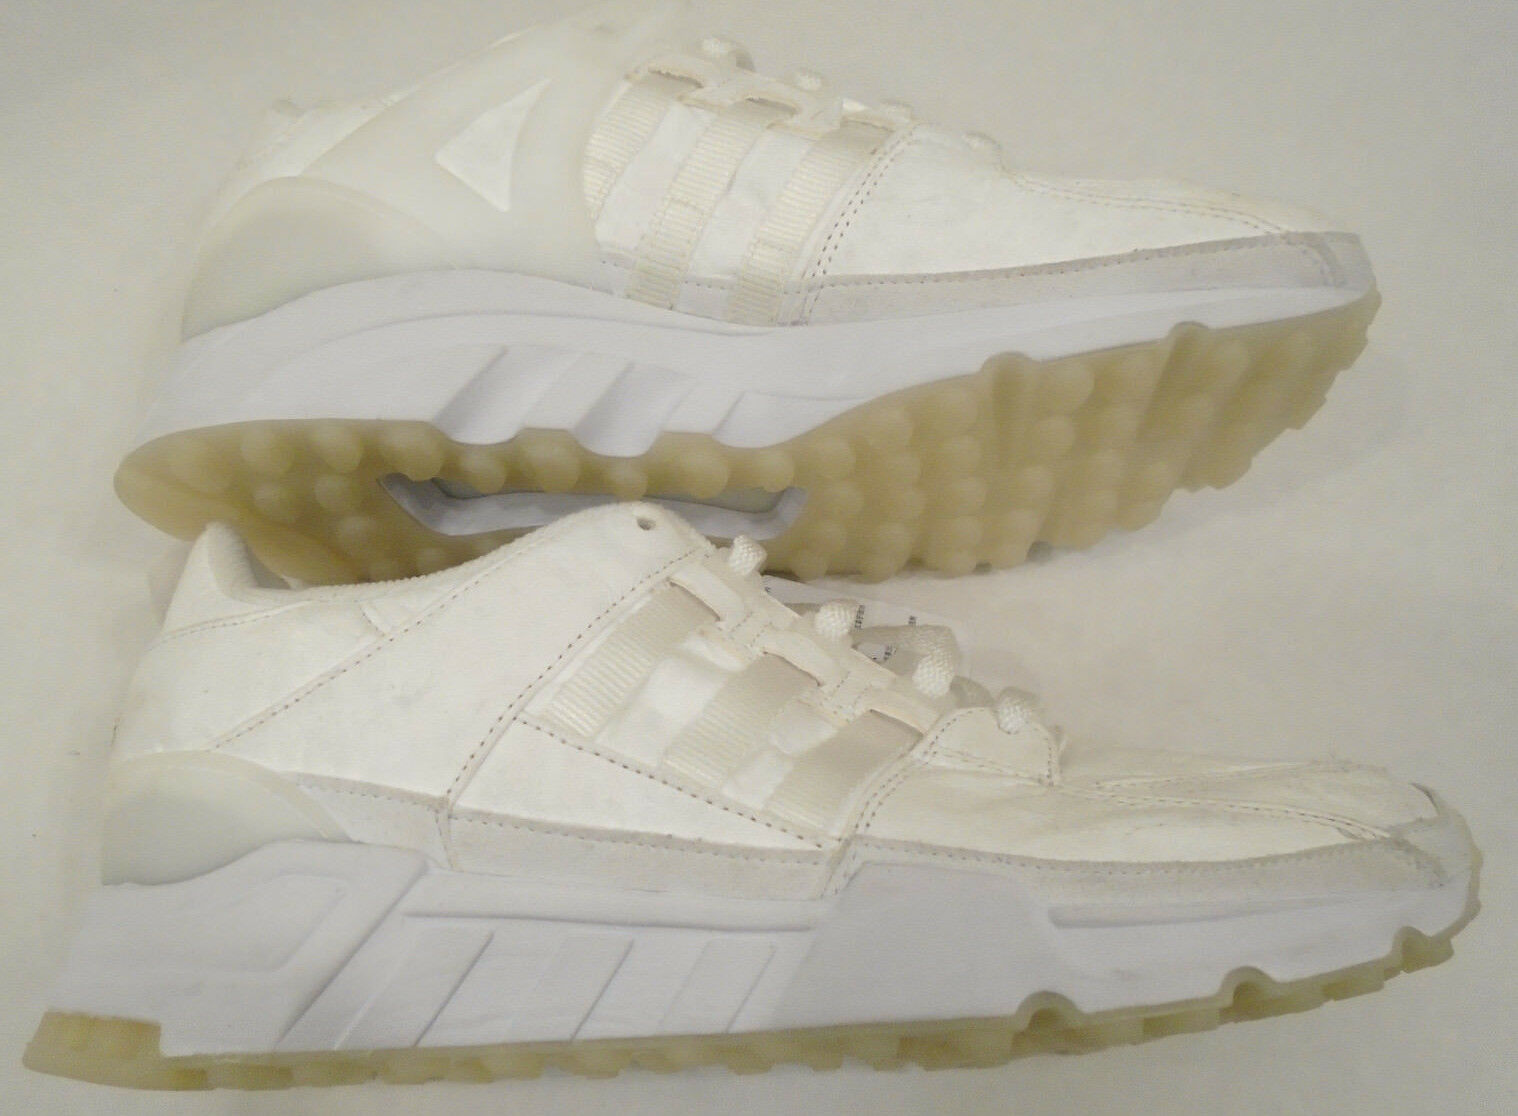 NEW Adidas Mens Size 11.5 EQT Equipment Running Support  Paper  shoes B27575